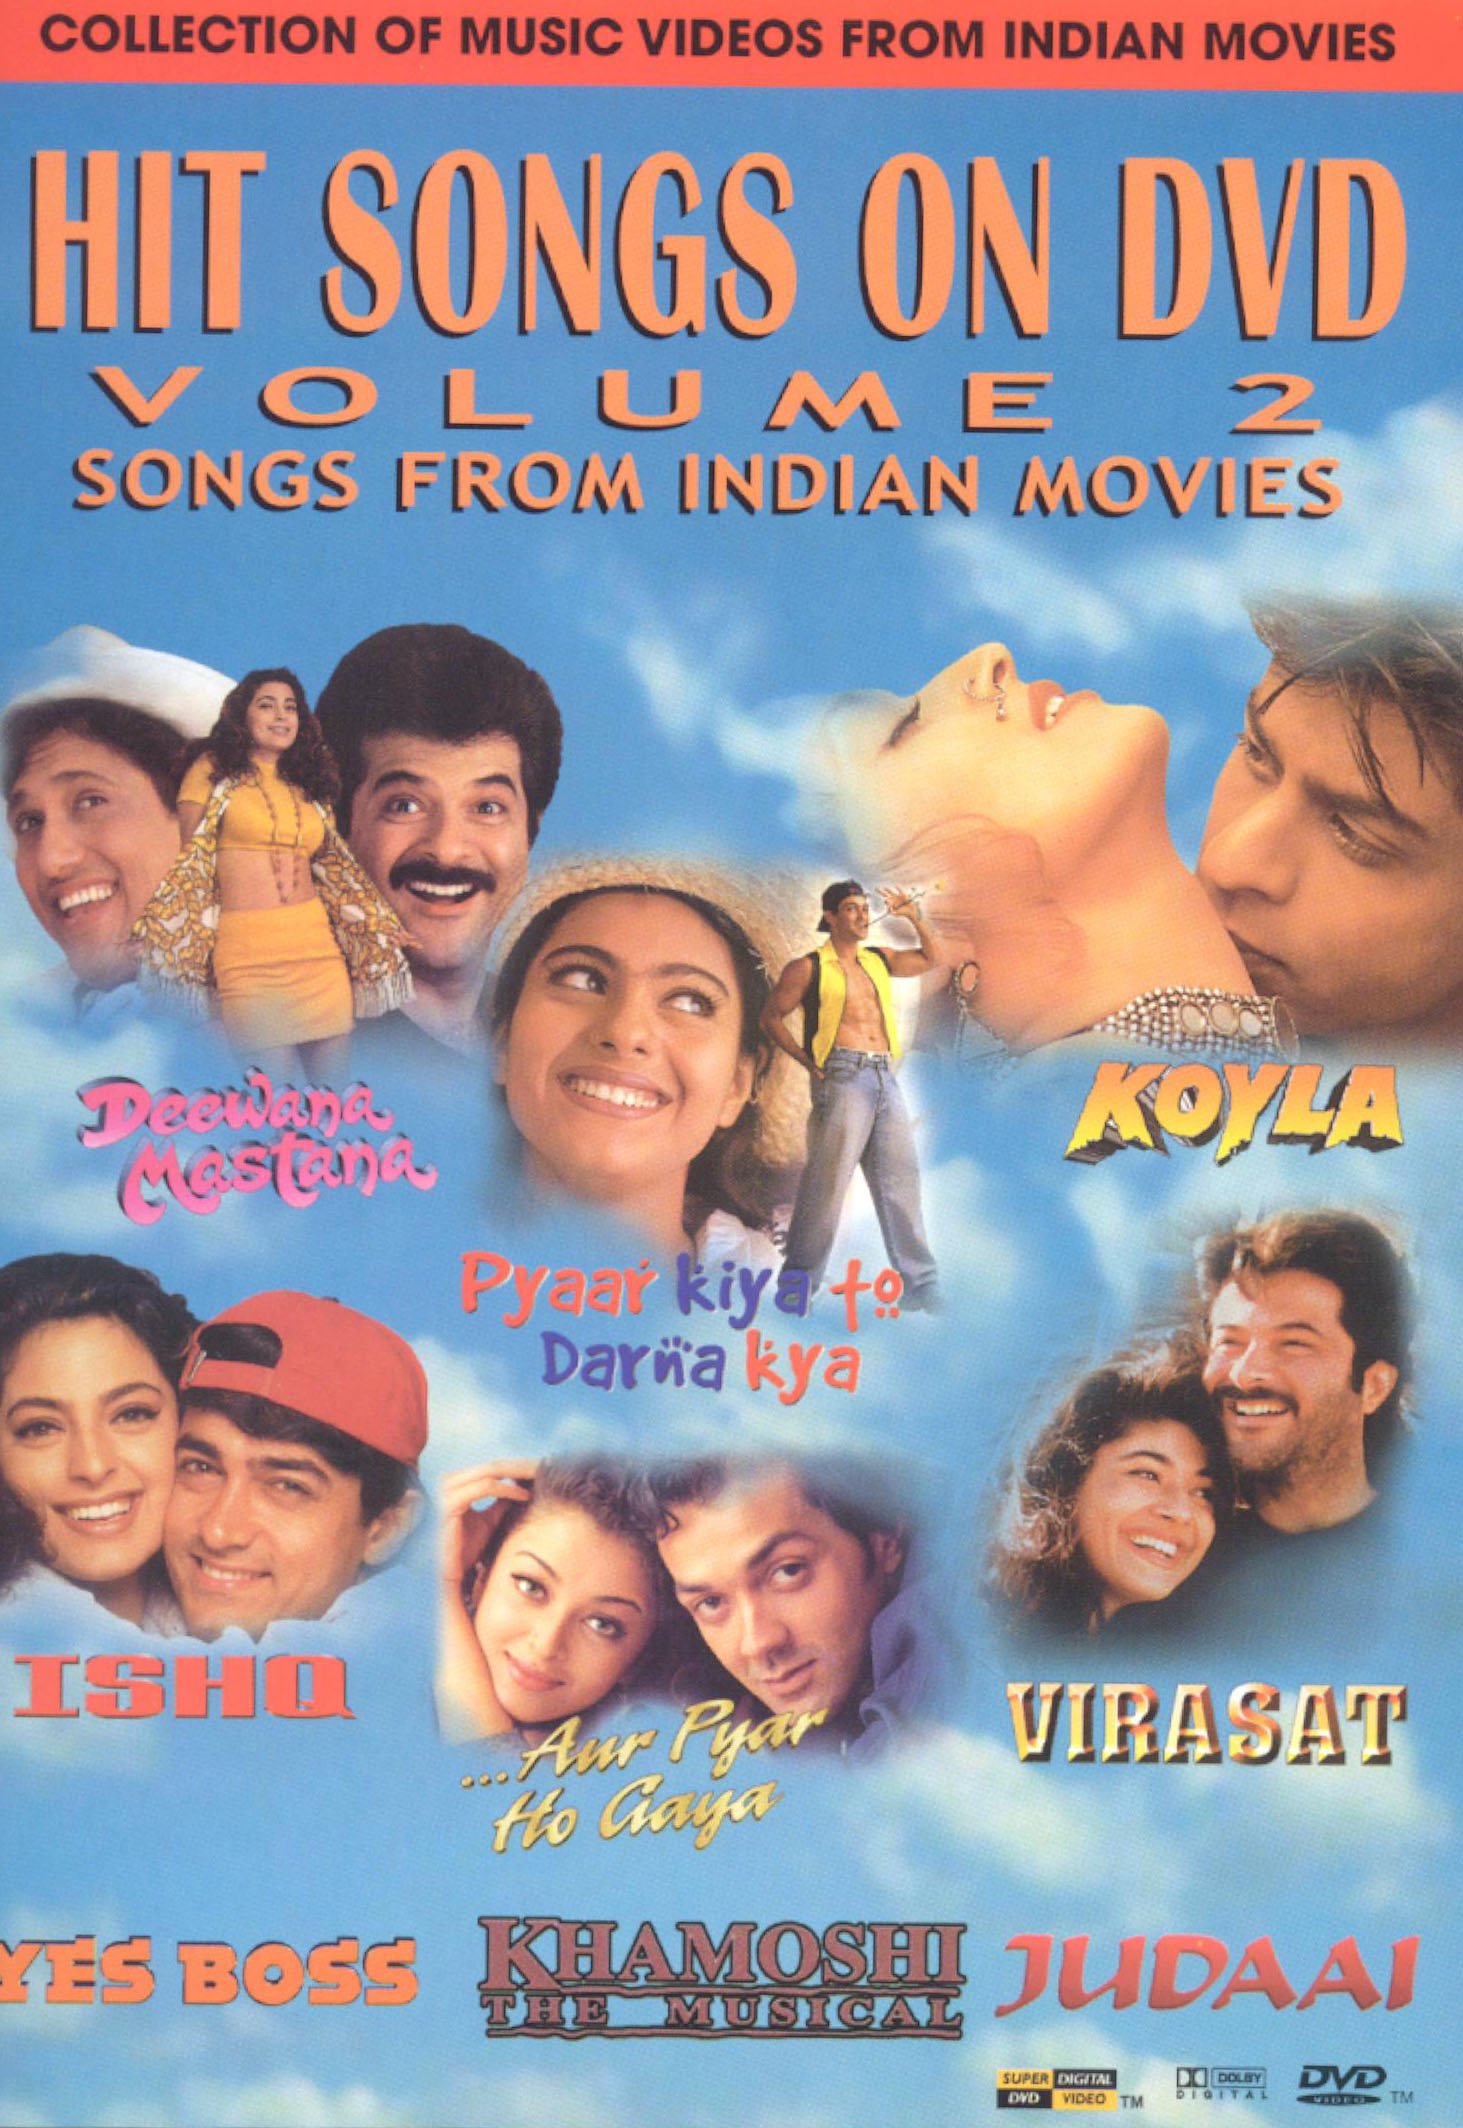 Hit Songs on DVD, Vol. 2: Songs from Indian Movies